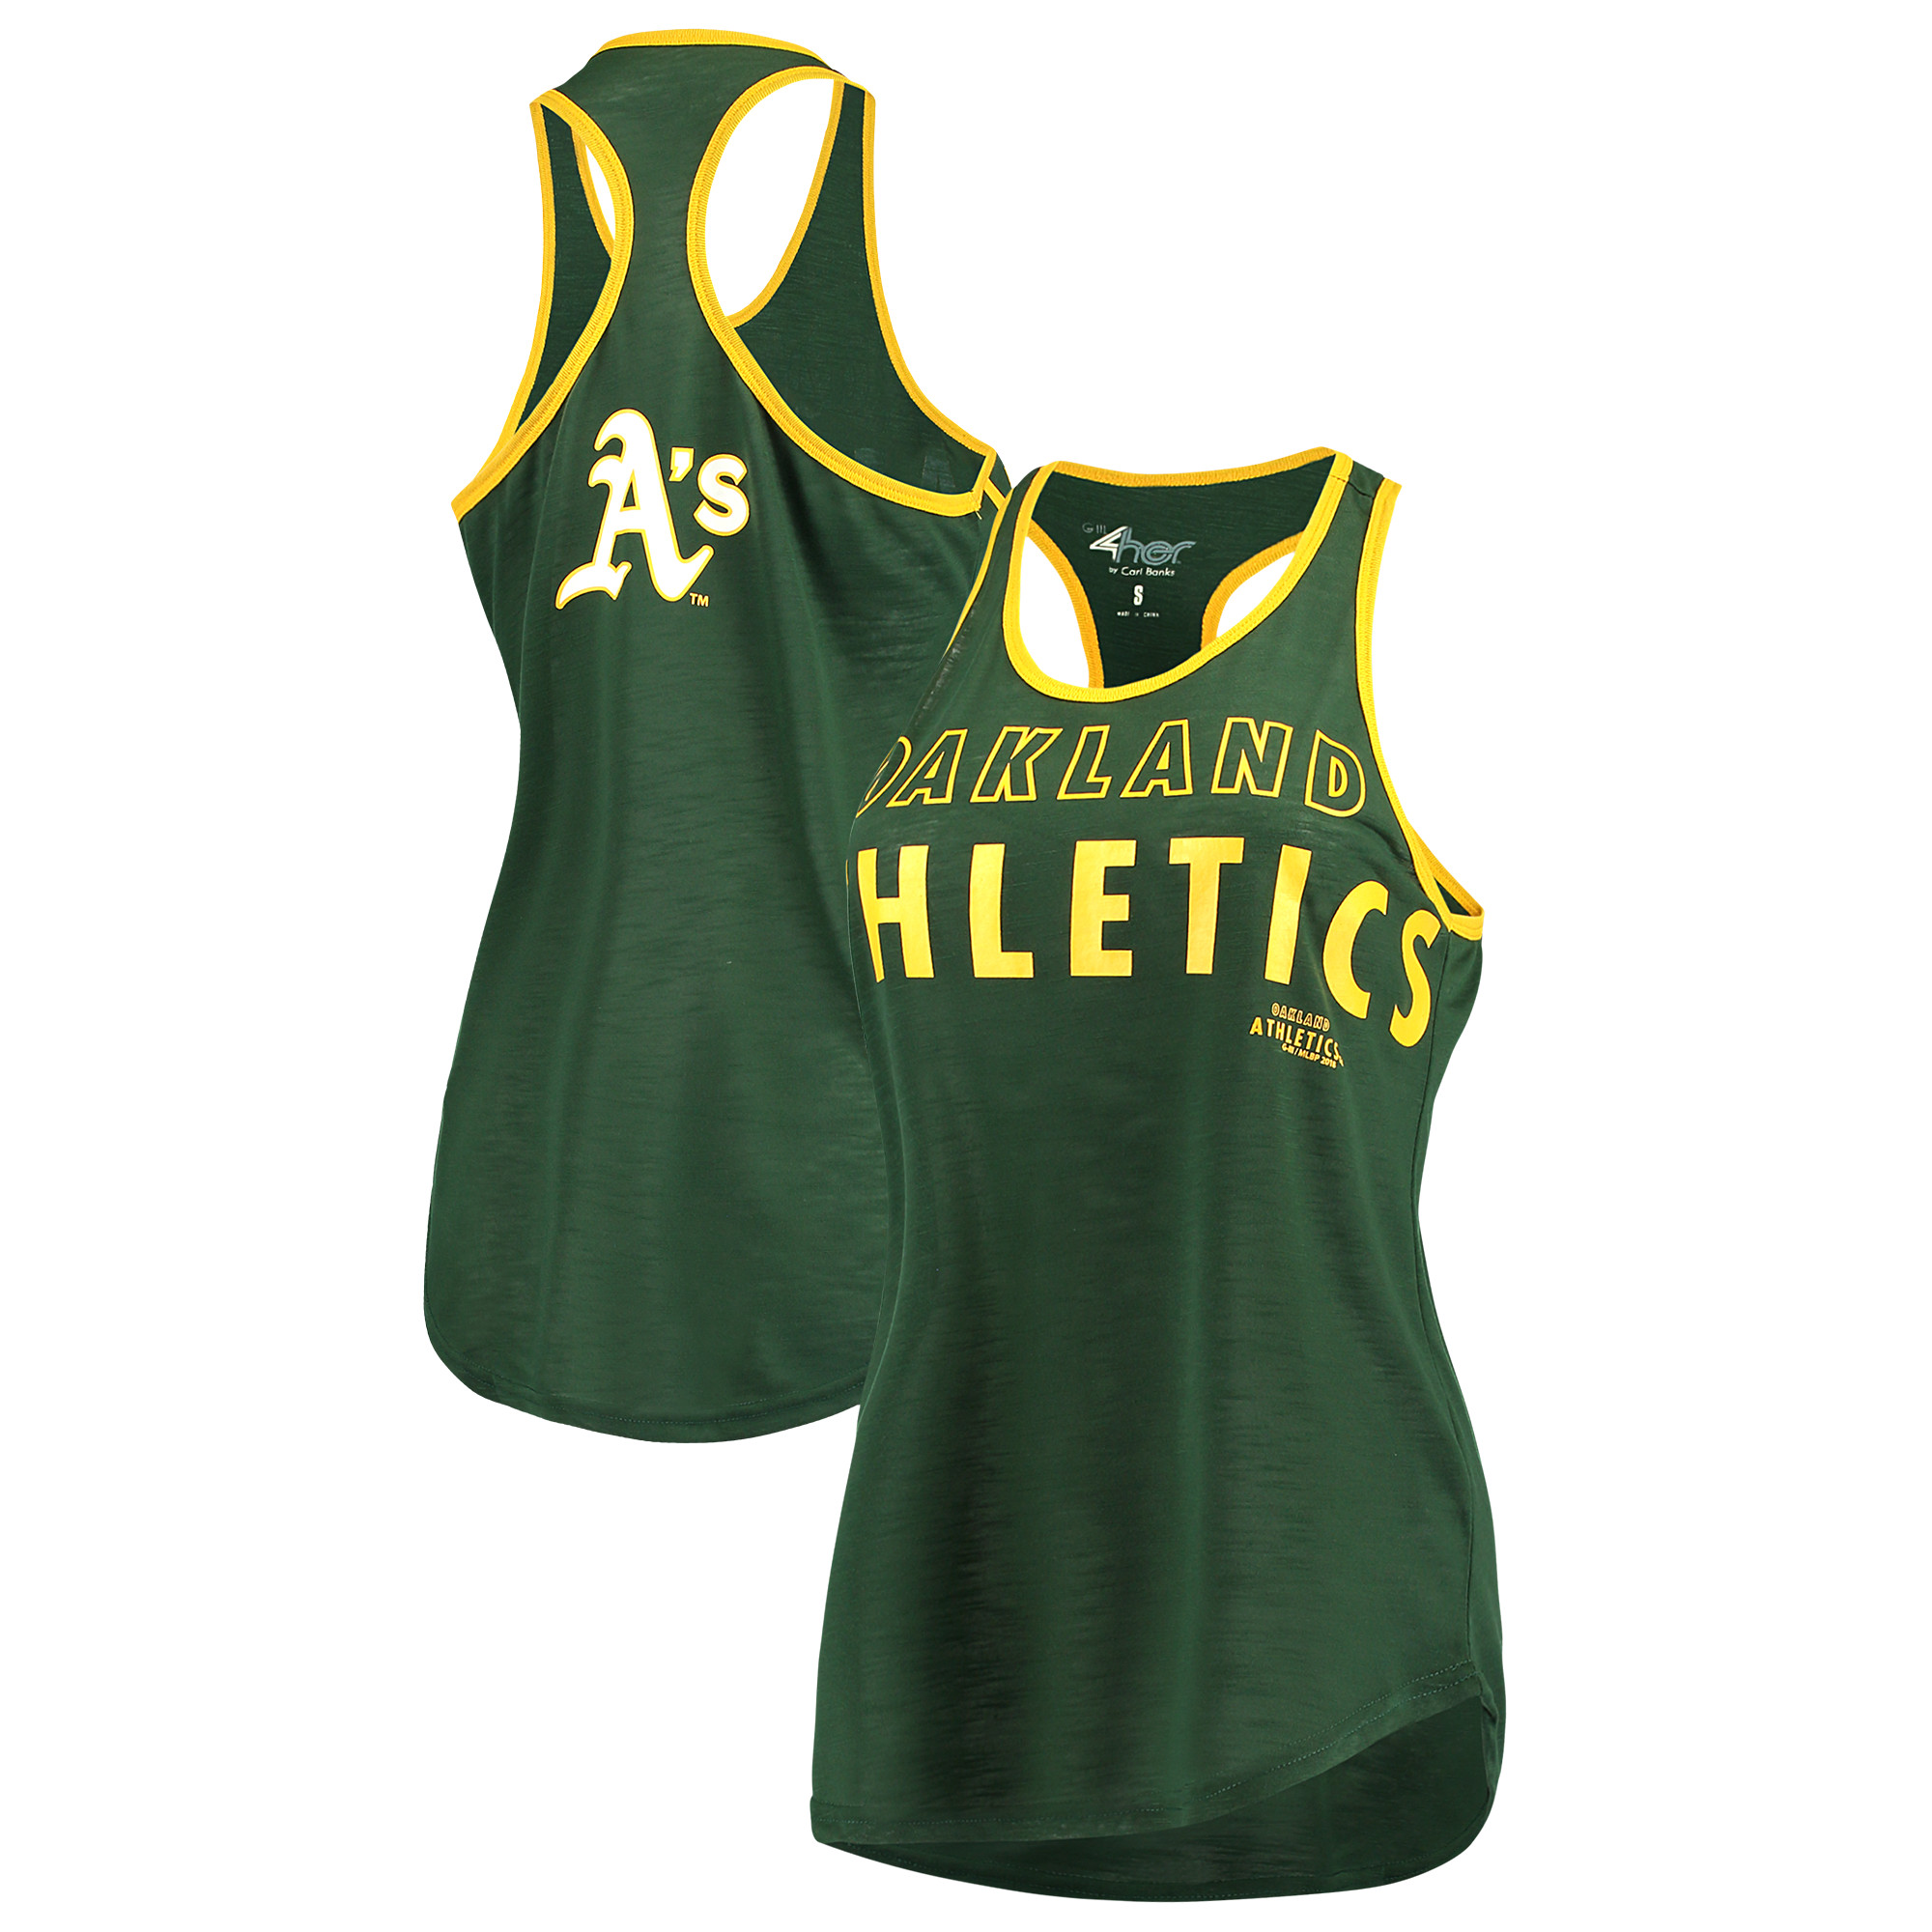 Oakland Athletics G-III 4Her by Carl Banks Women's Game Time Tank Top - Green/Gold